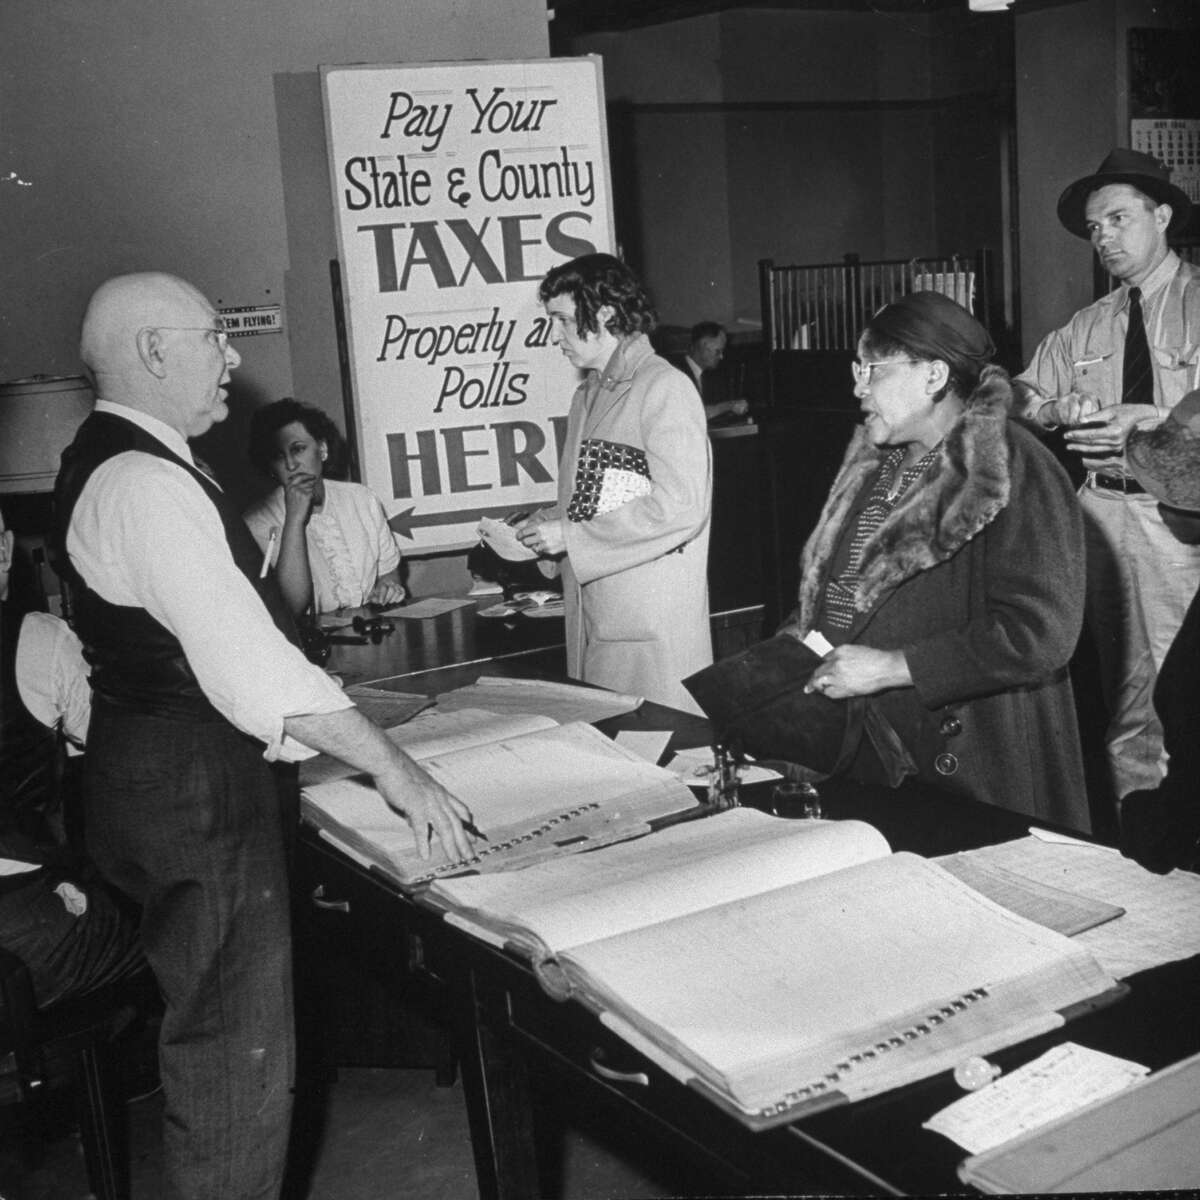 People paying poll taxes, circa 1944.